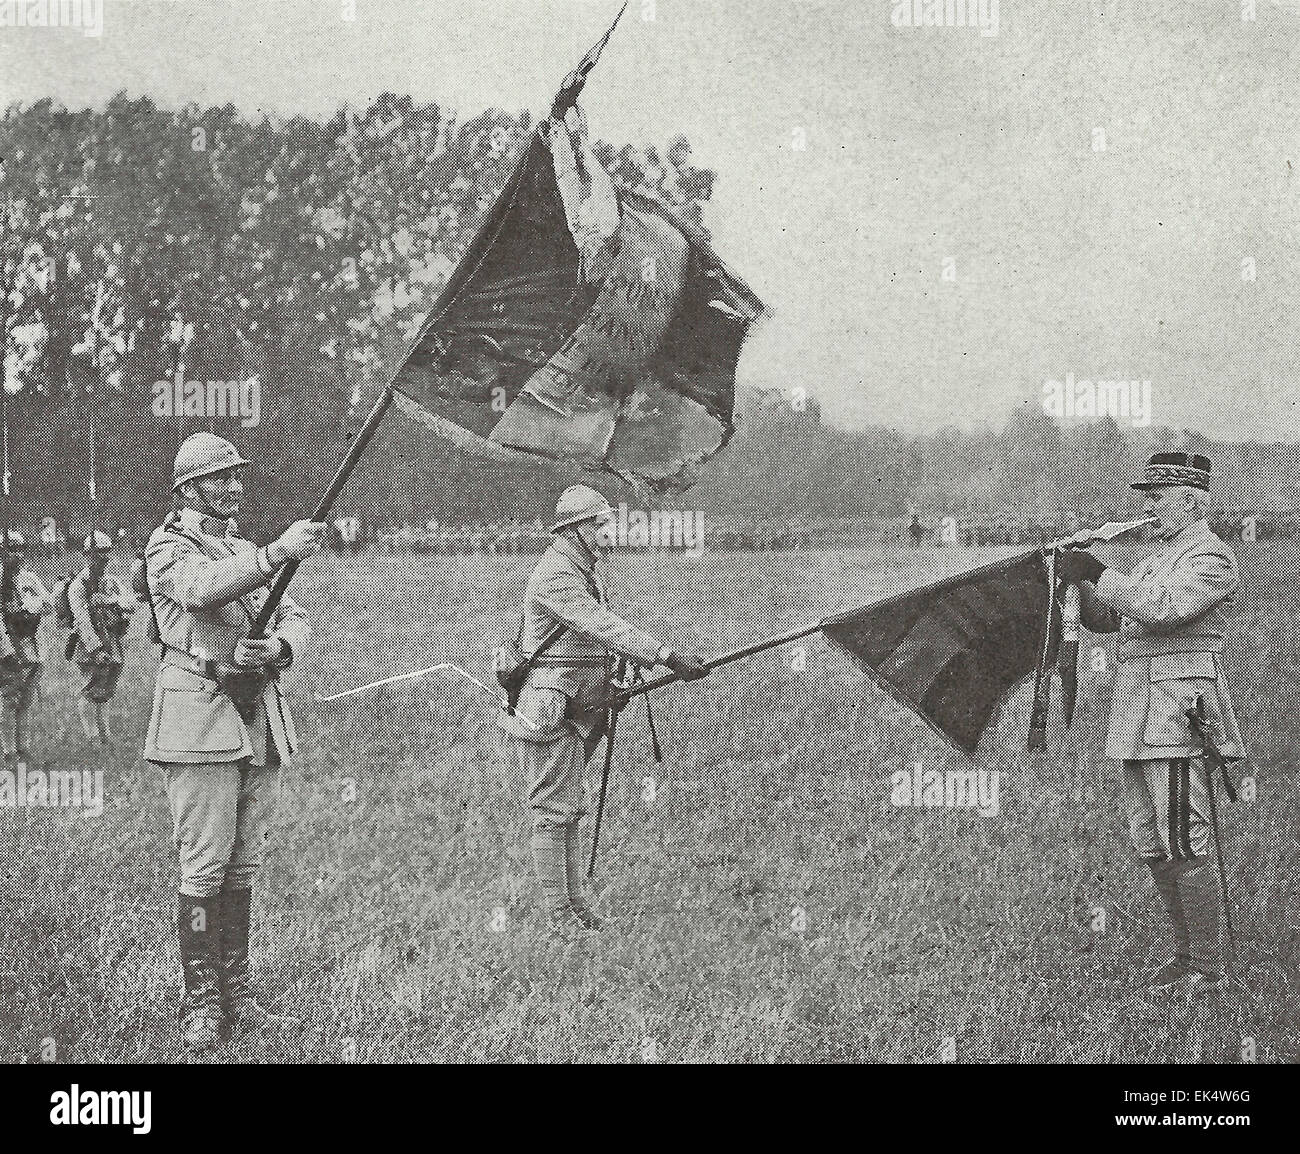 General Petain, the defender of Verdun, is here seen decorating the flag of one of the heroic French Regiments under - Stock Image